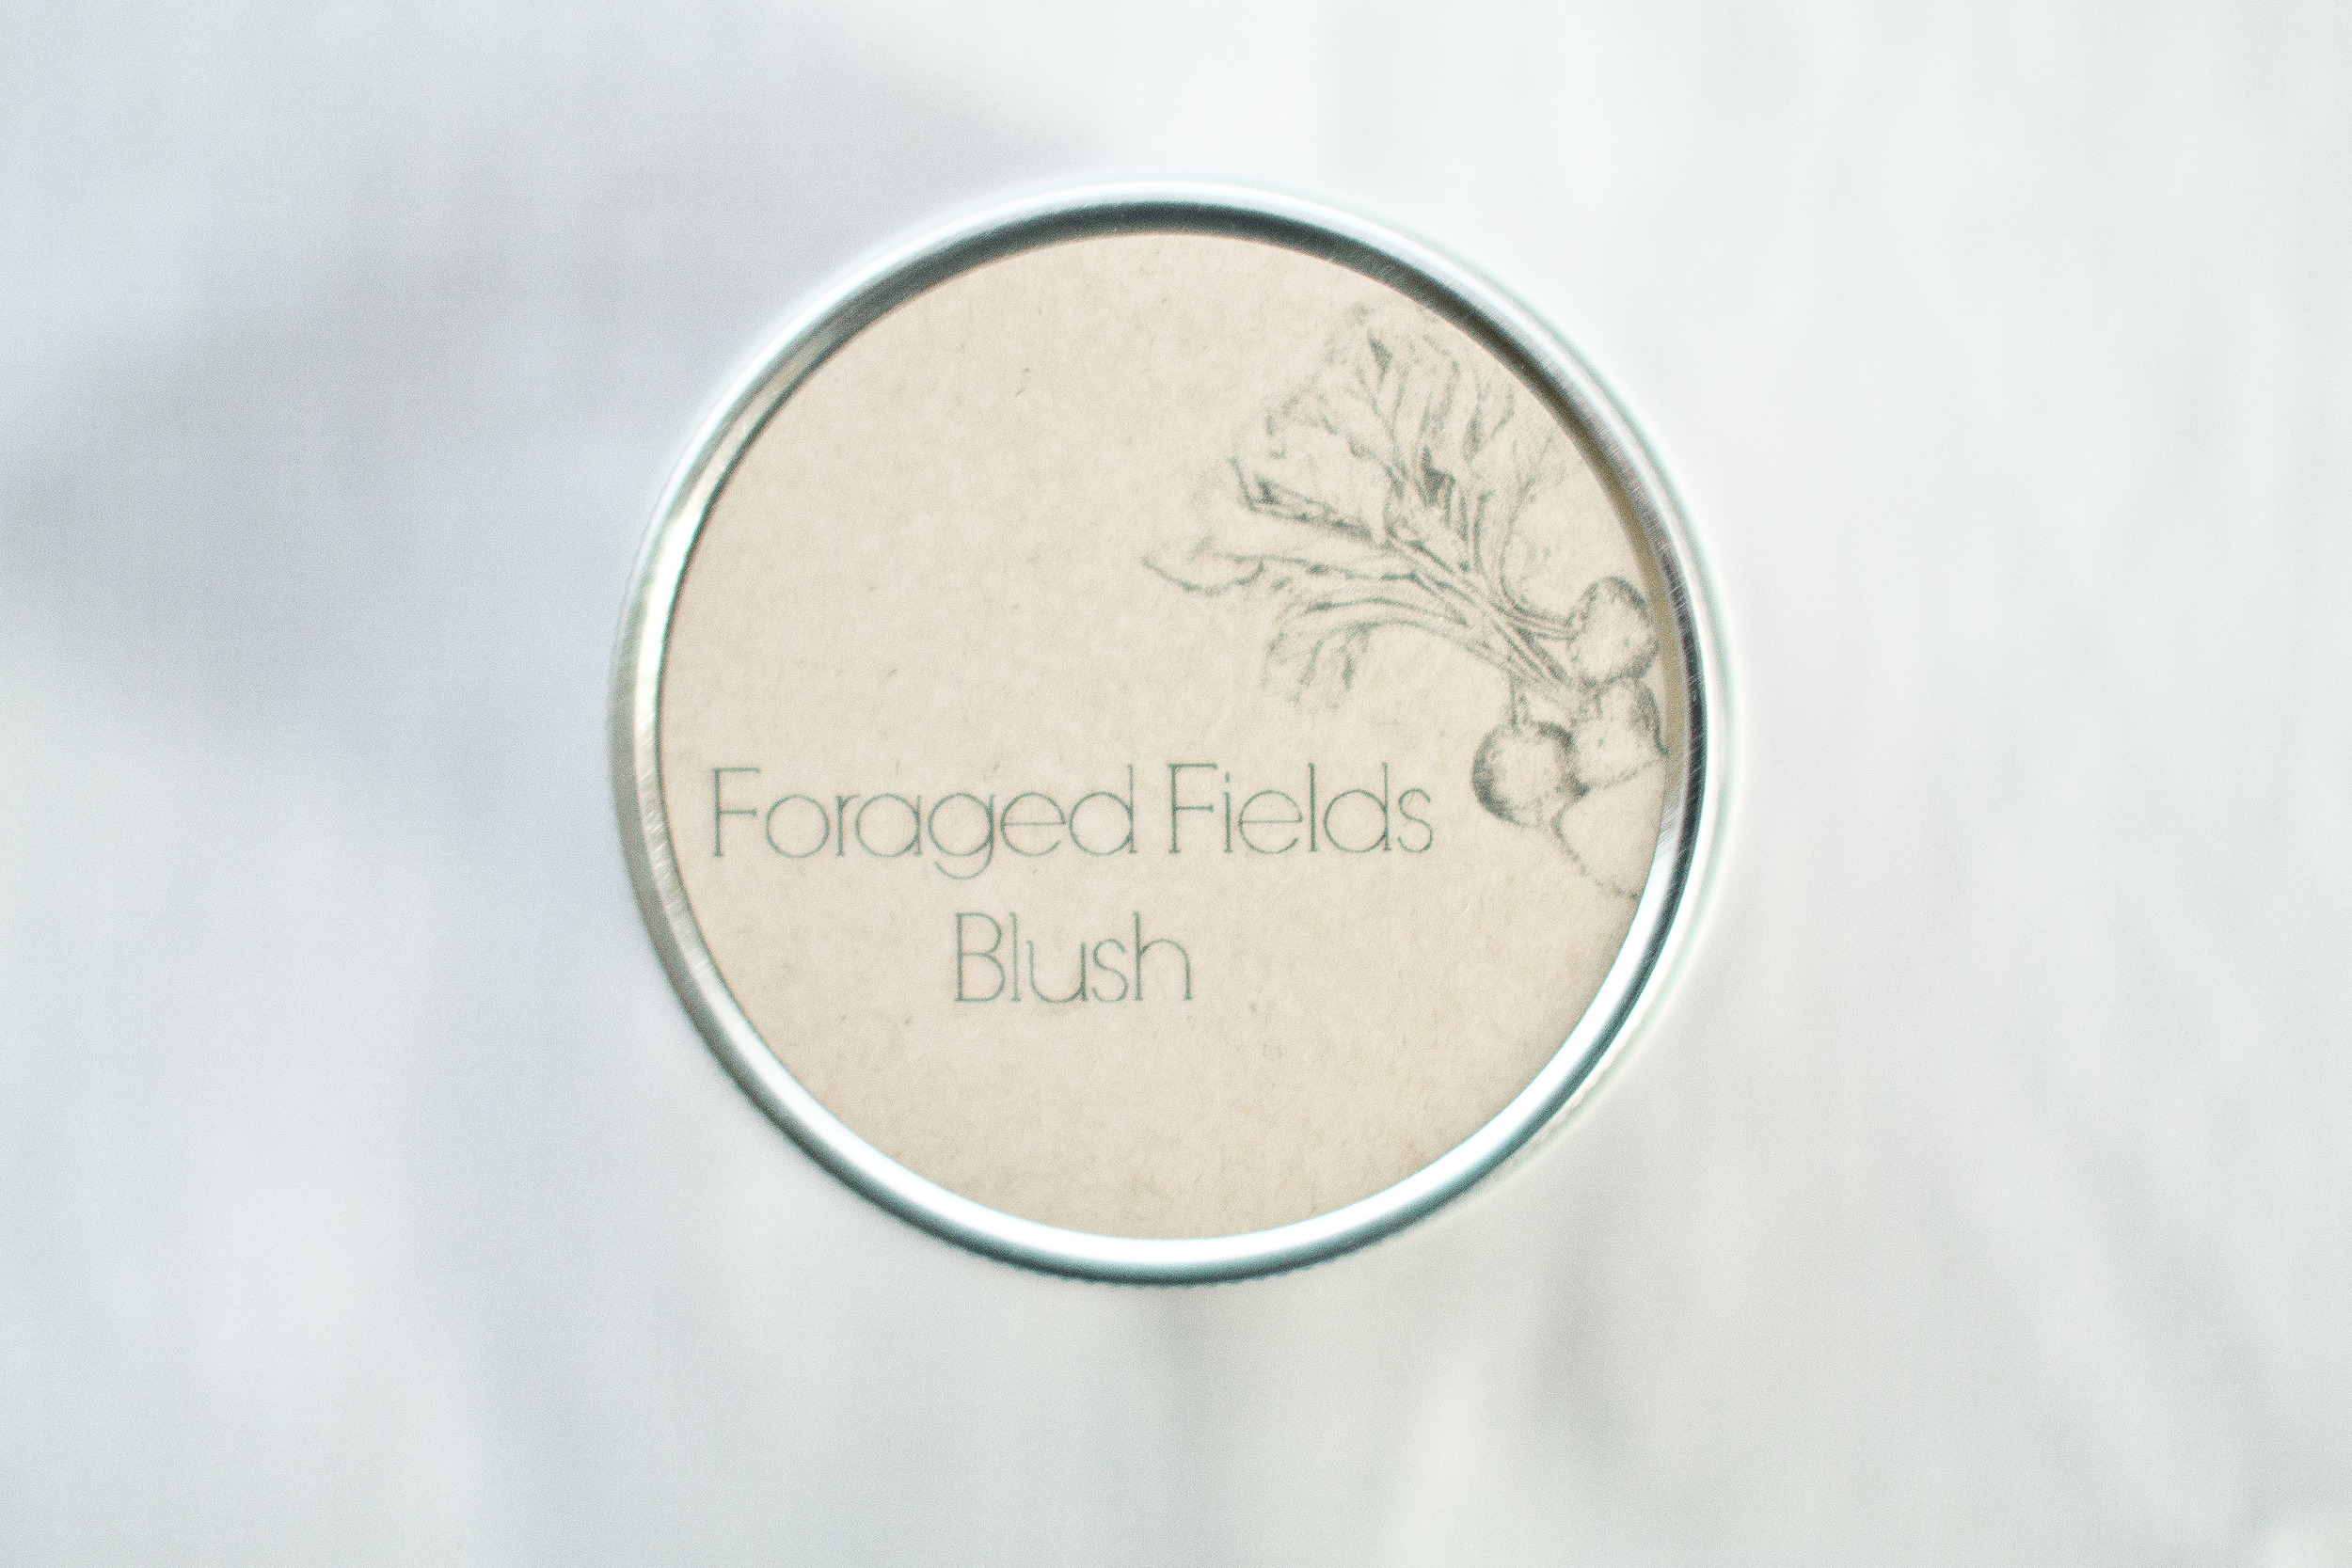 All natural and eco-friendly blush by Foraged Fields | Keeper & Co. Blog